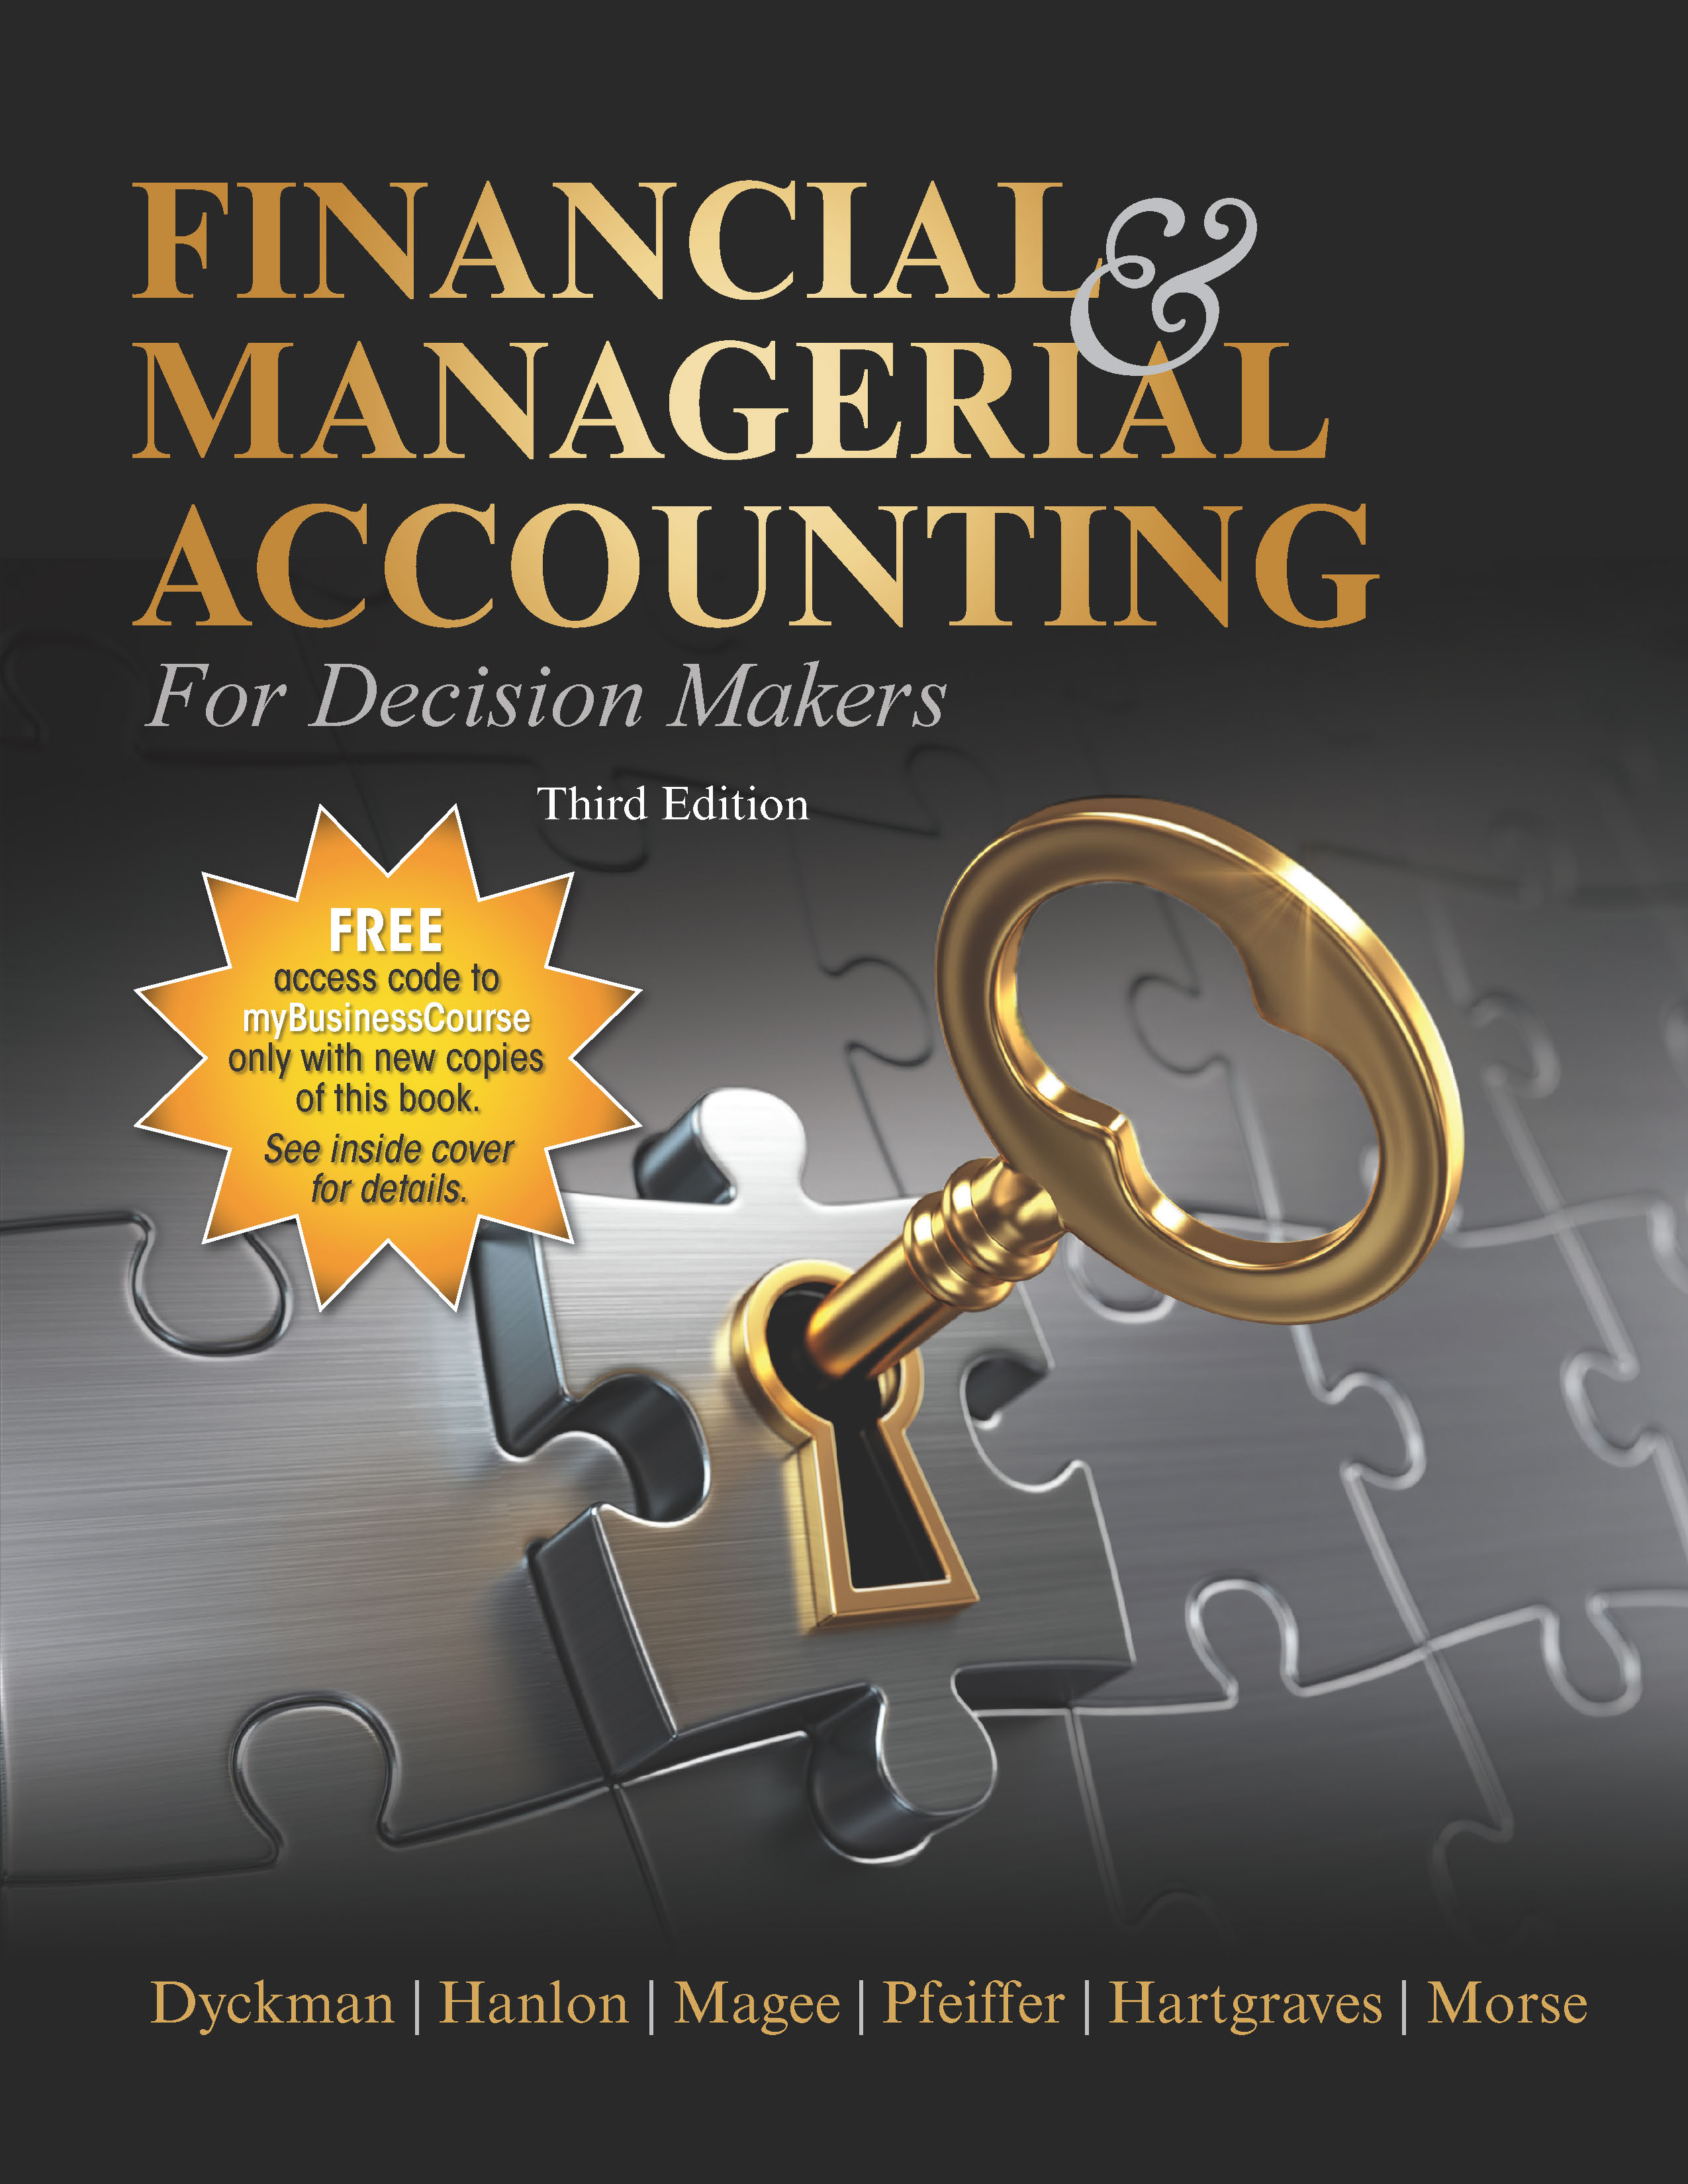 Financial & Managerial Accounting for Decision Makers, 3e